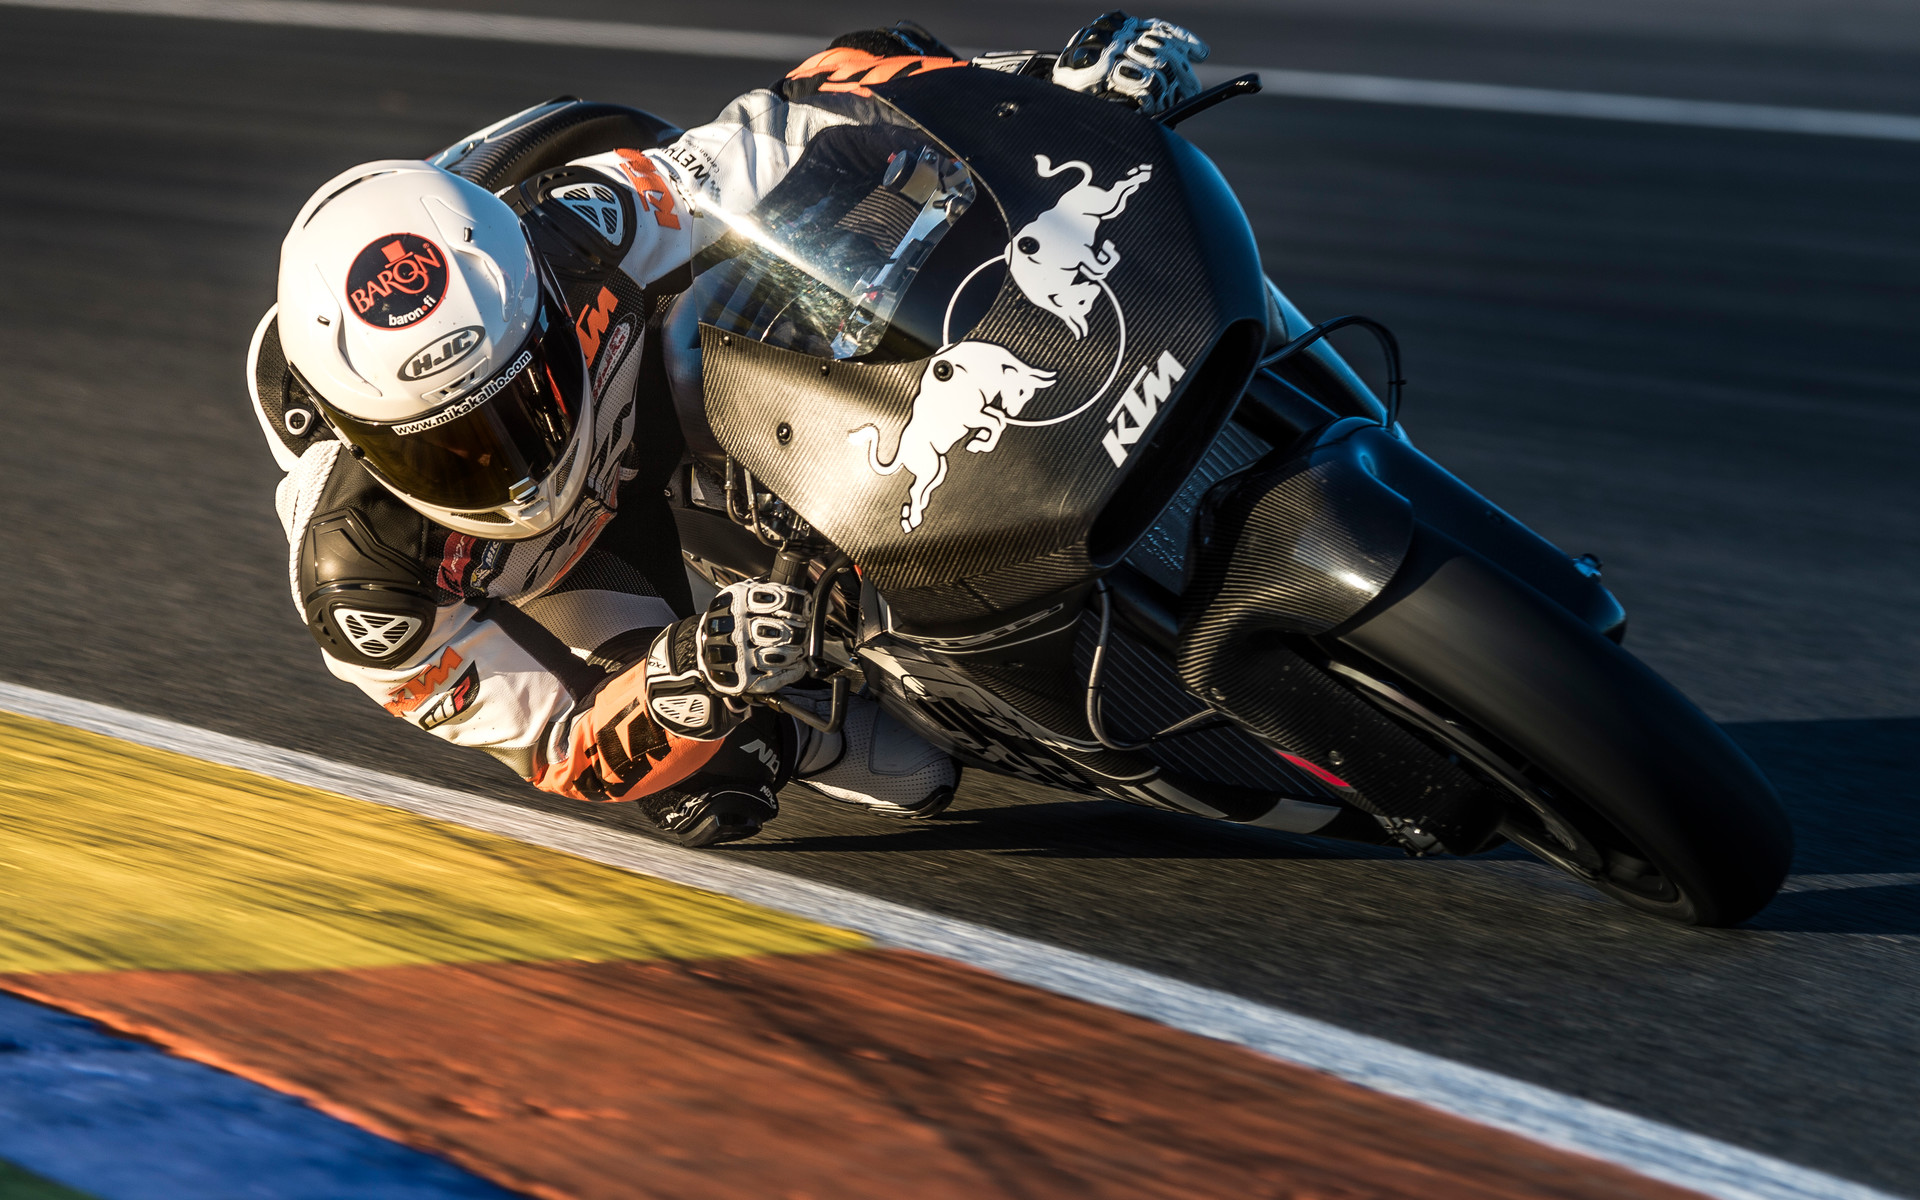 Ktm Rc16 At Least One Wildcard Entry In 2016 Luca Marini In Moto2 With Forward Racing Autoevolution